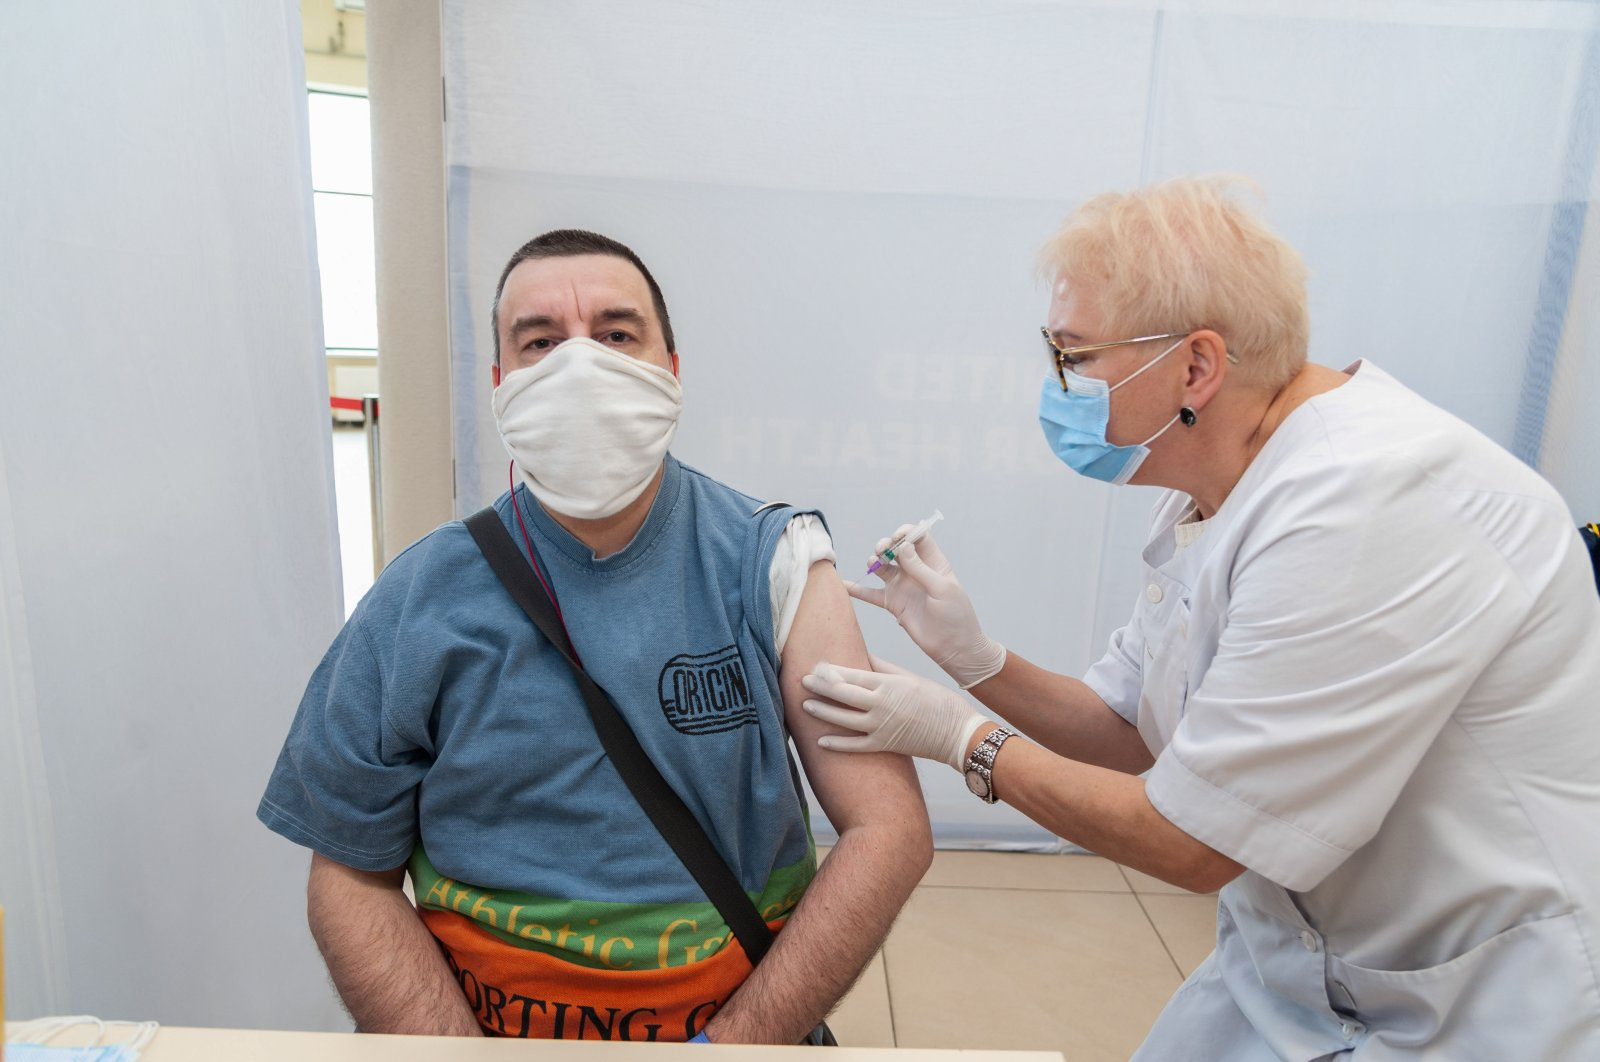 A healthcare worker administers a dose of Sinovac vaccine to a man at the Arena Lviv stadium, in Lviv, Ukraine, May 29, 2021. (Sipa USA via Reuters)